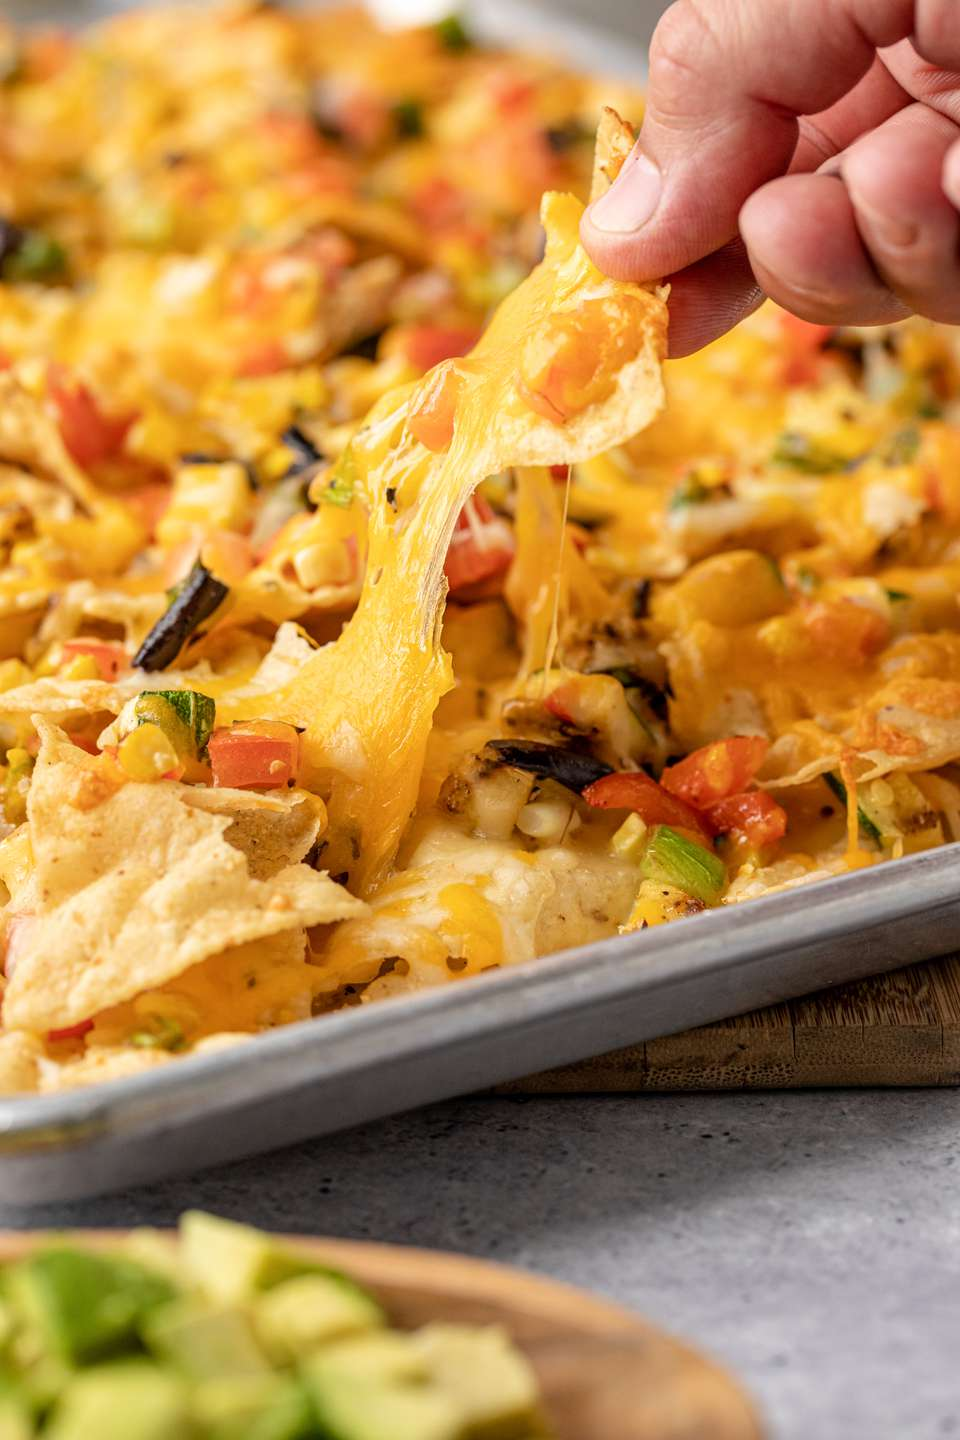 Picking up a chip from a pan of easy grilled vegetable nachos.